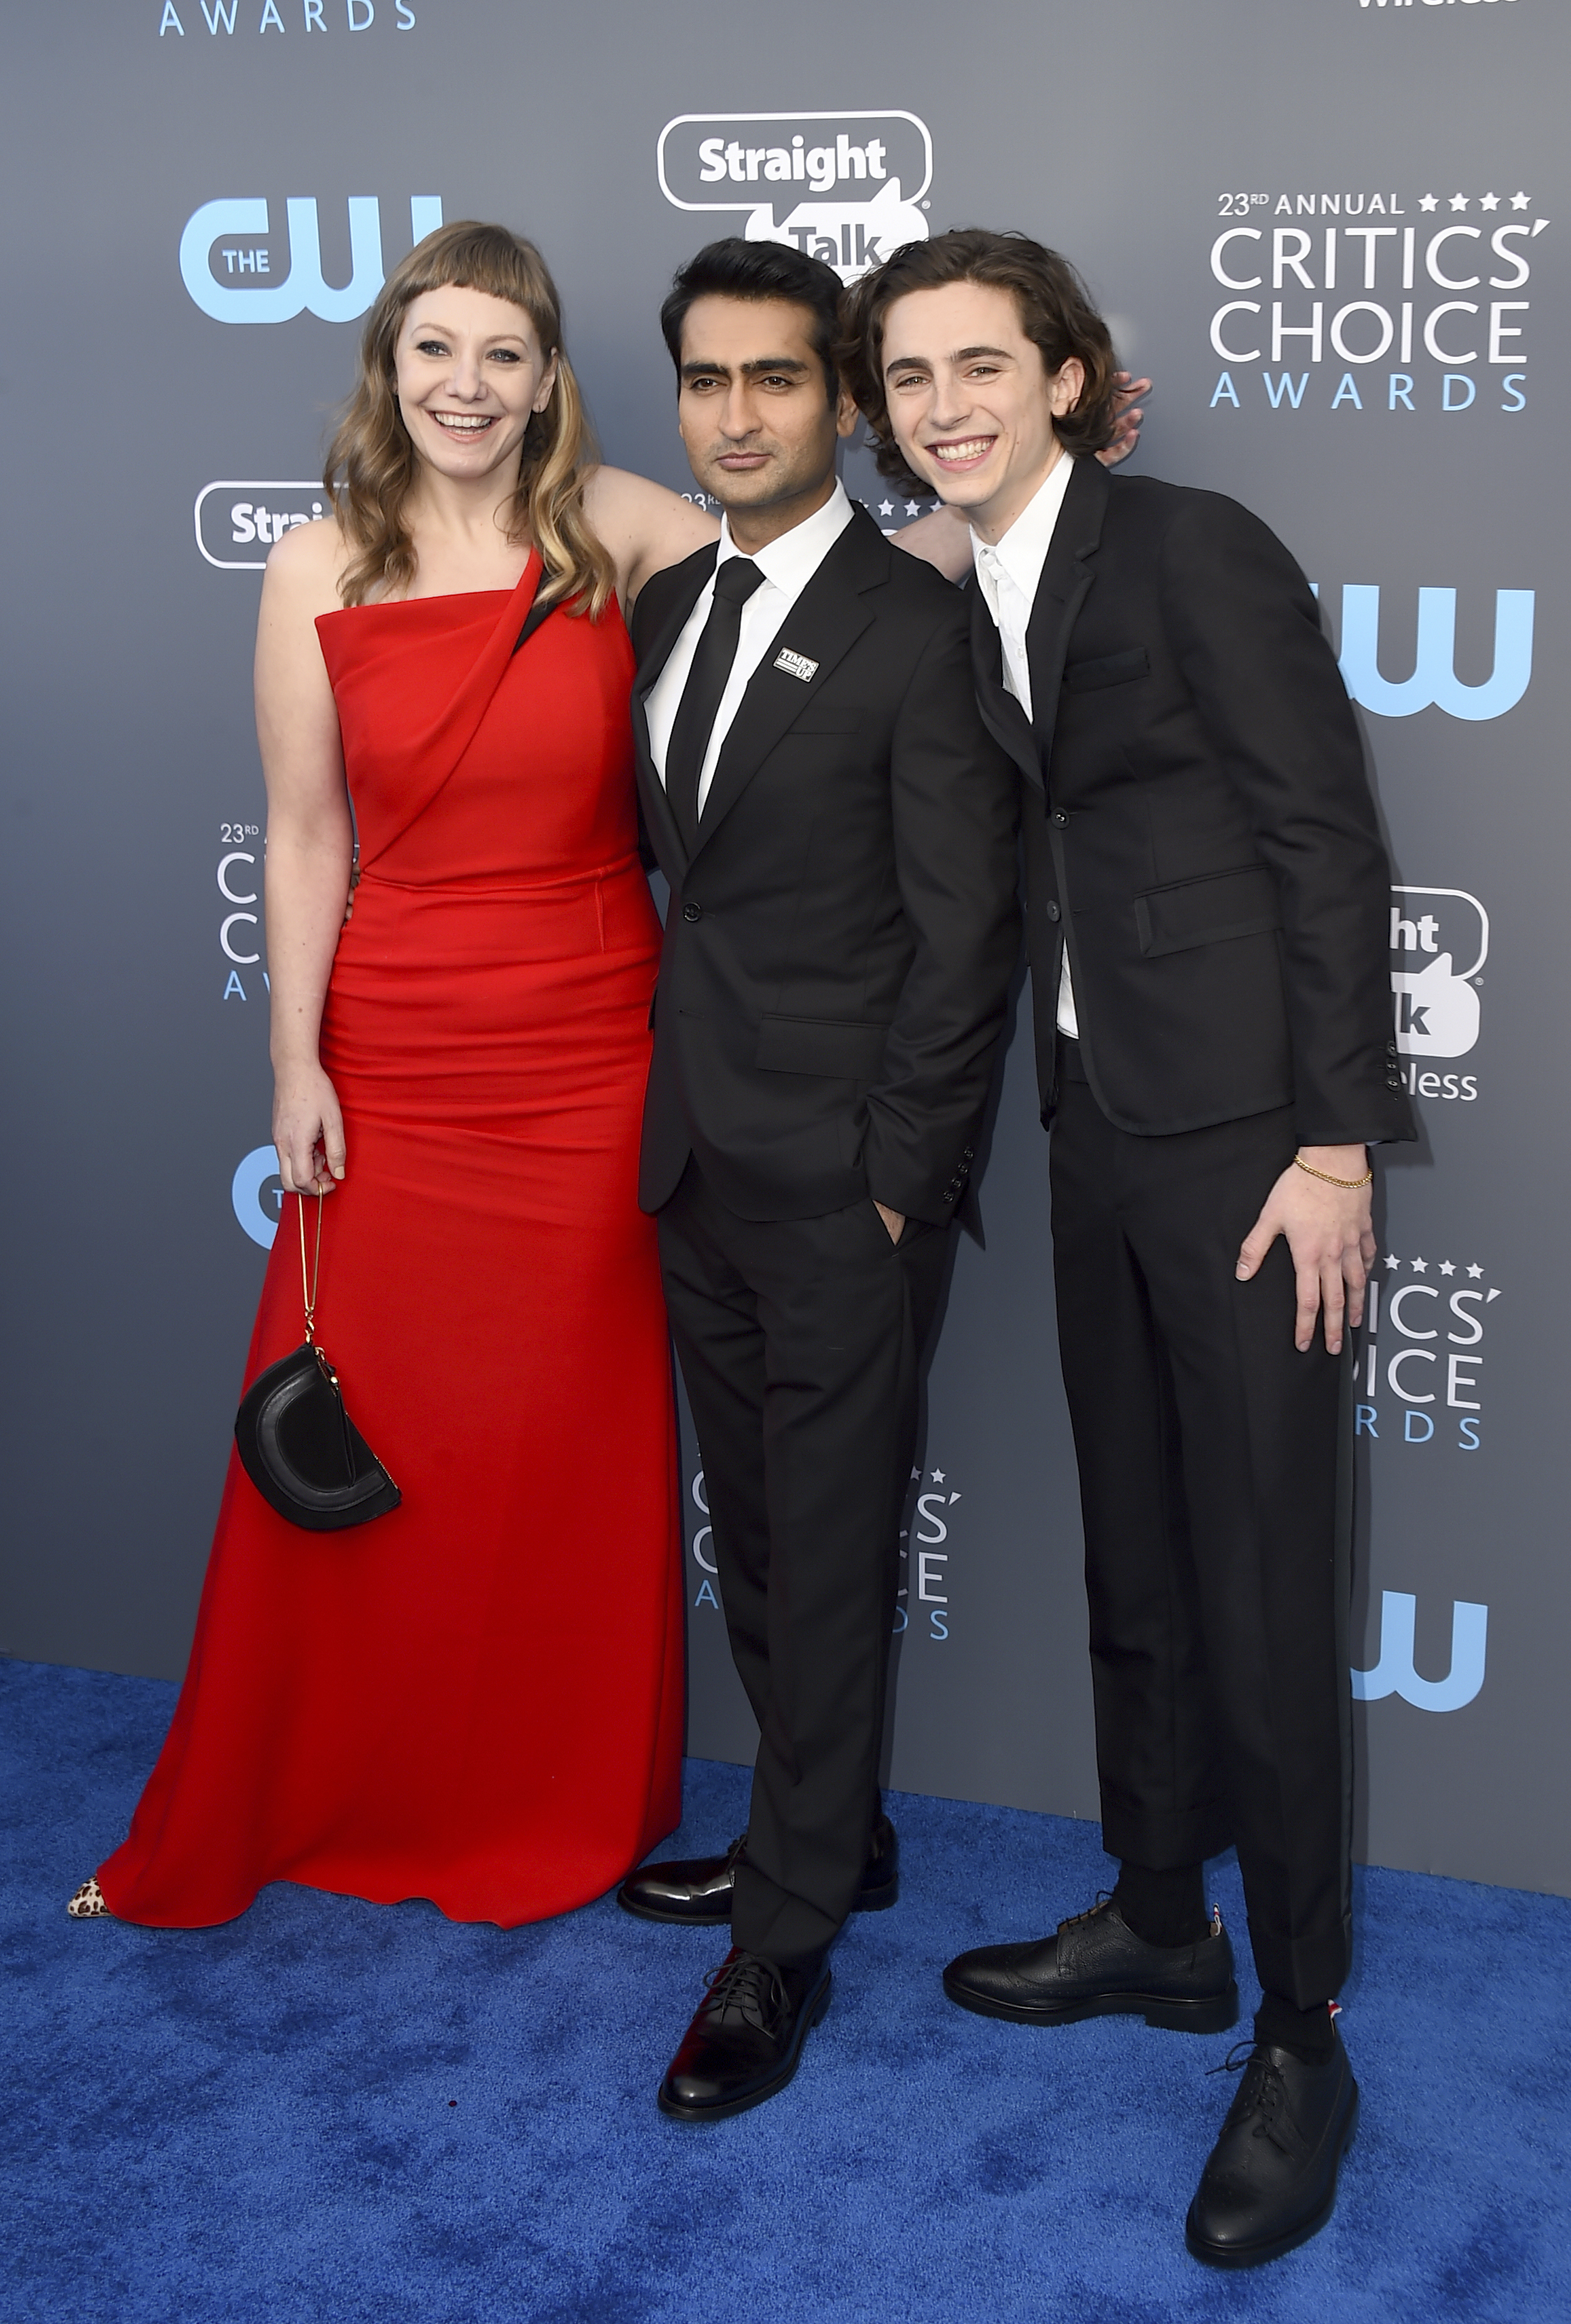 <div class='meta'><div class='origin-logo' data-origin='AP'></div><span class='caption-text' data-credit='Jordan Strauss/Invision/AP'>Emily V. Gordon, from left, Kumail Nanjiani, and Timothee Chalamet arrive at the 23rd annual Critics' Choice Awards at the Barker Hangar on Thursday, Jan. 11, 2018.</span></div>